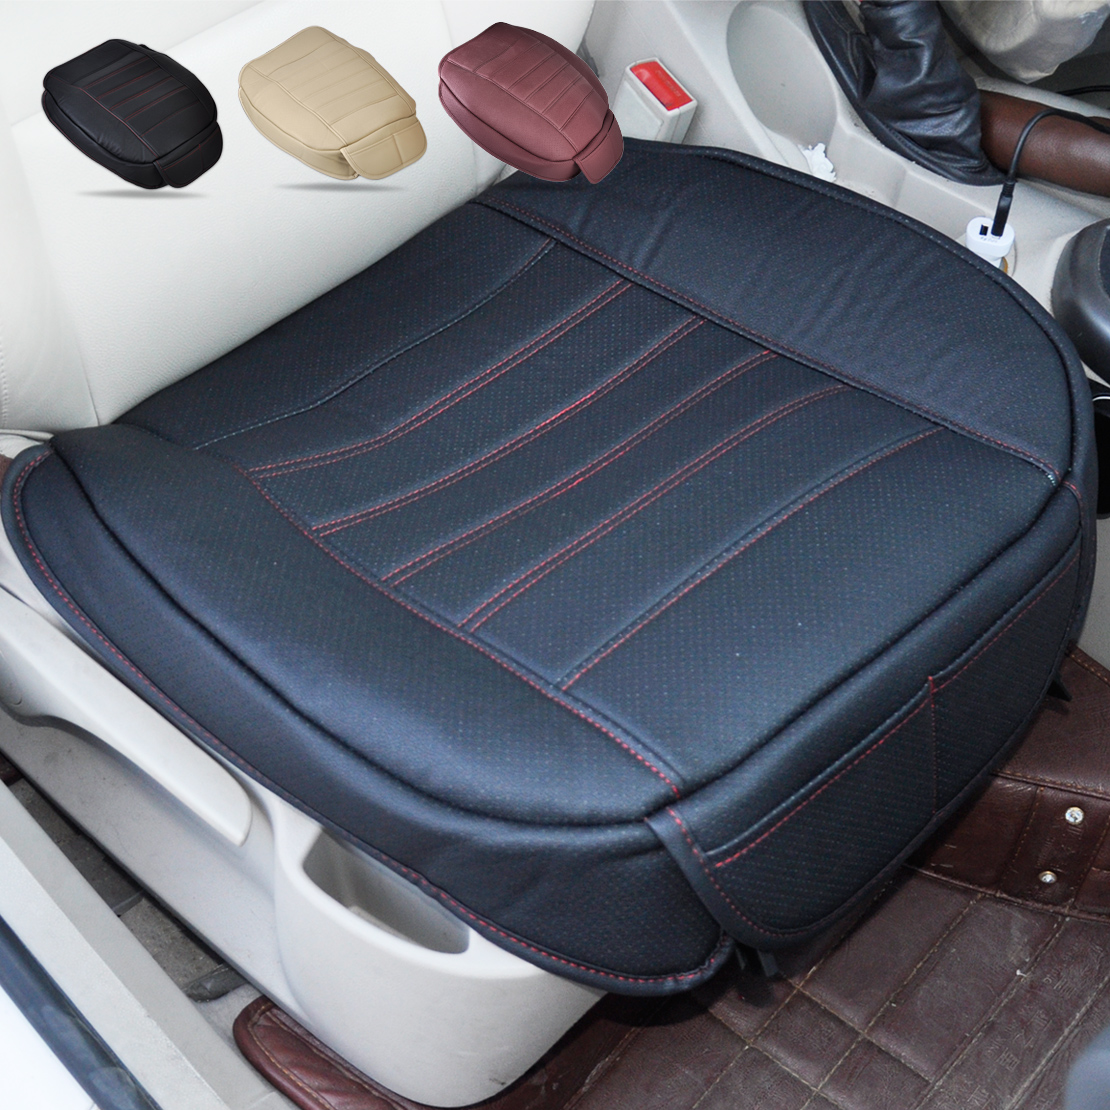 Dwcx universal pu leather car interior front seat cover seatpad for ford focus vw golf audi